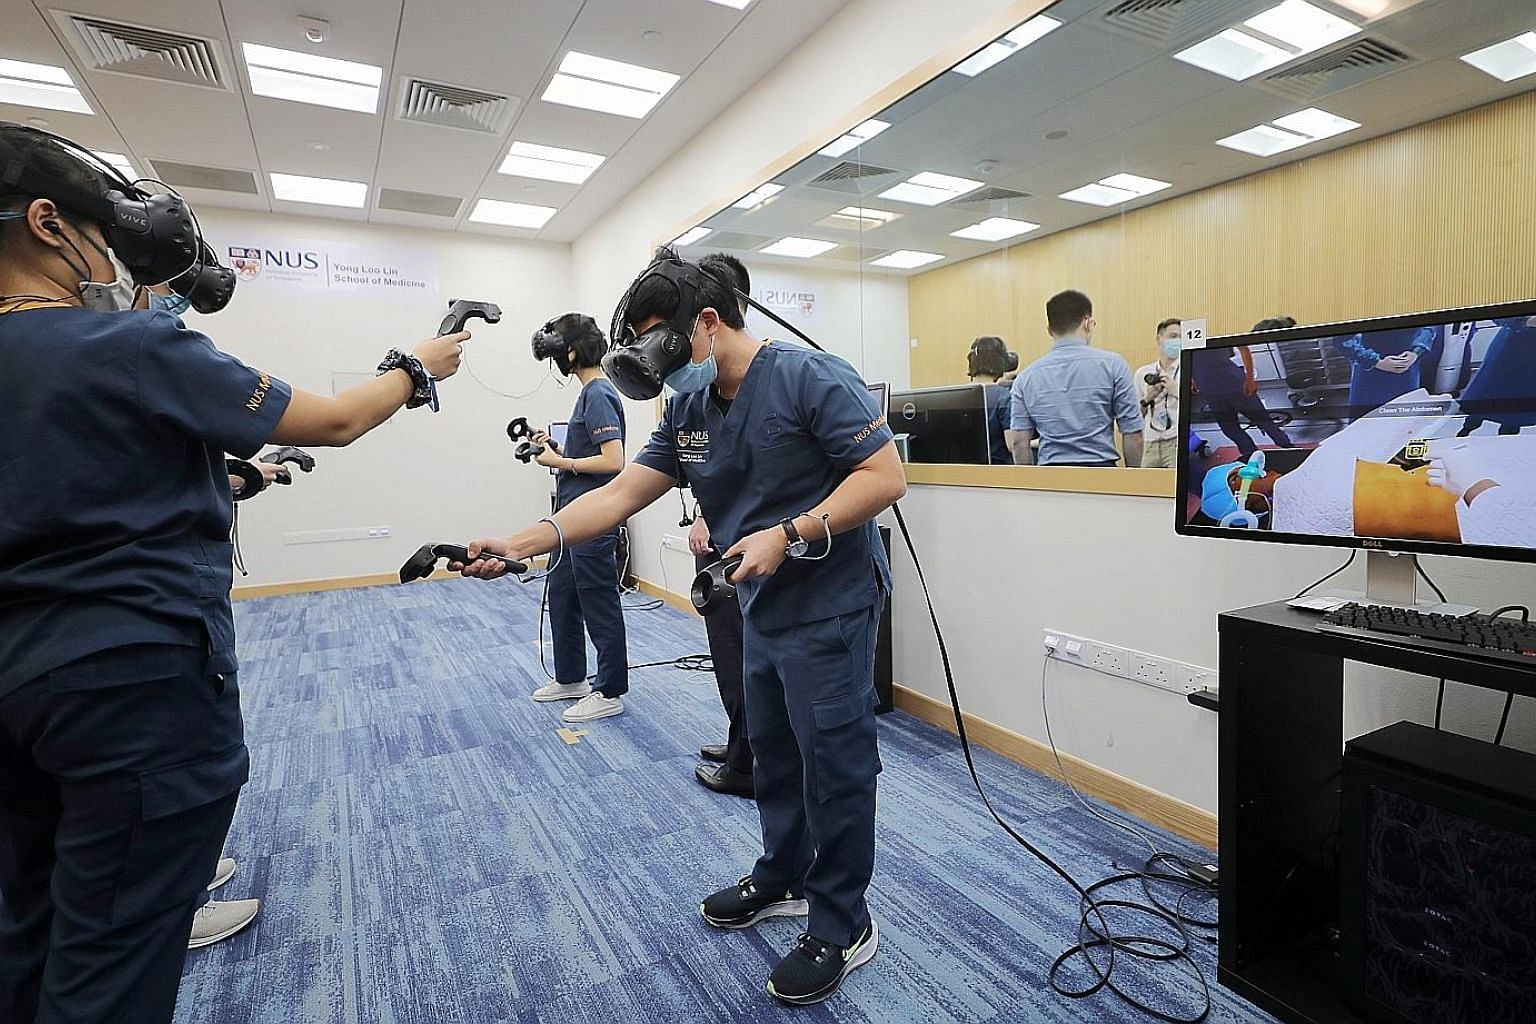 A group of third-year students at the NUS Yong Loo Lin School of Medicine learning in a virtual environment with the use of VR headsets and hand-held controllers. Their movements are observed by educators who guide them.